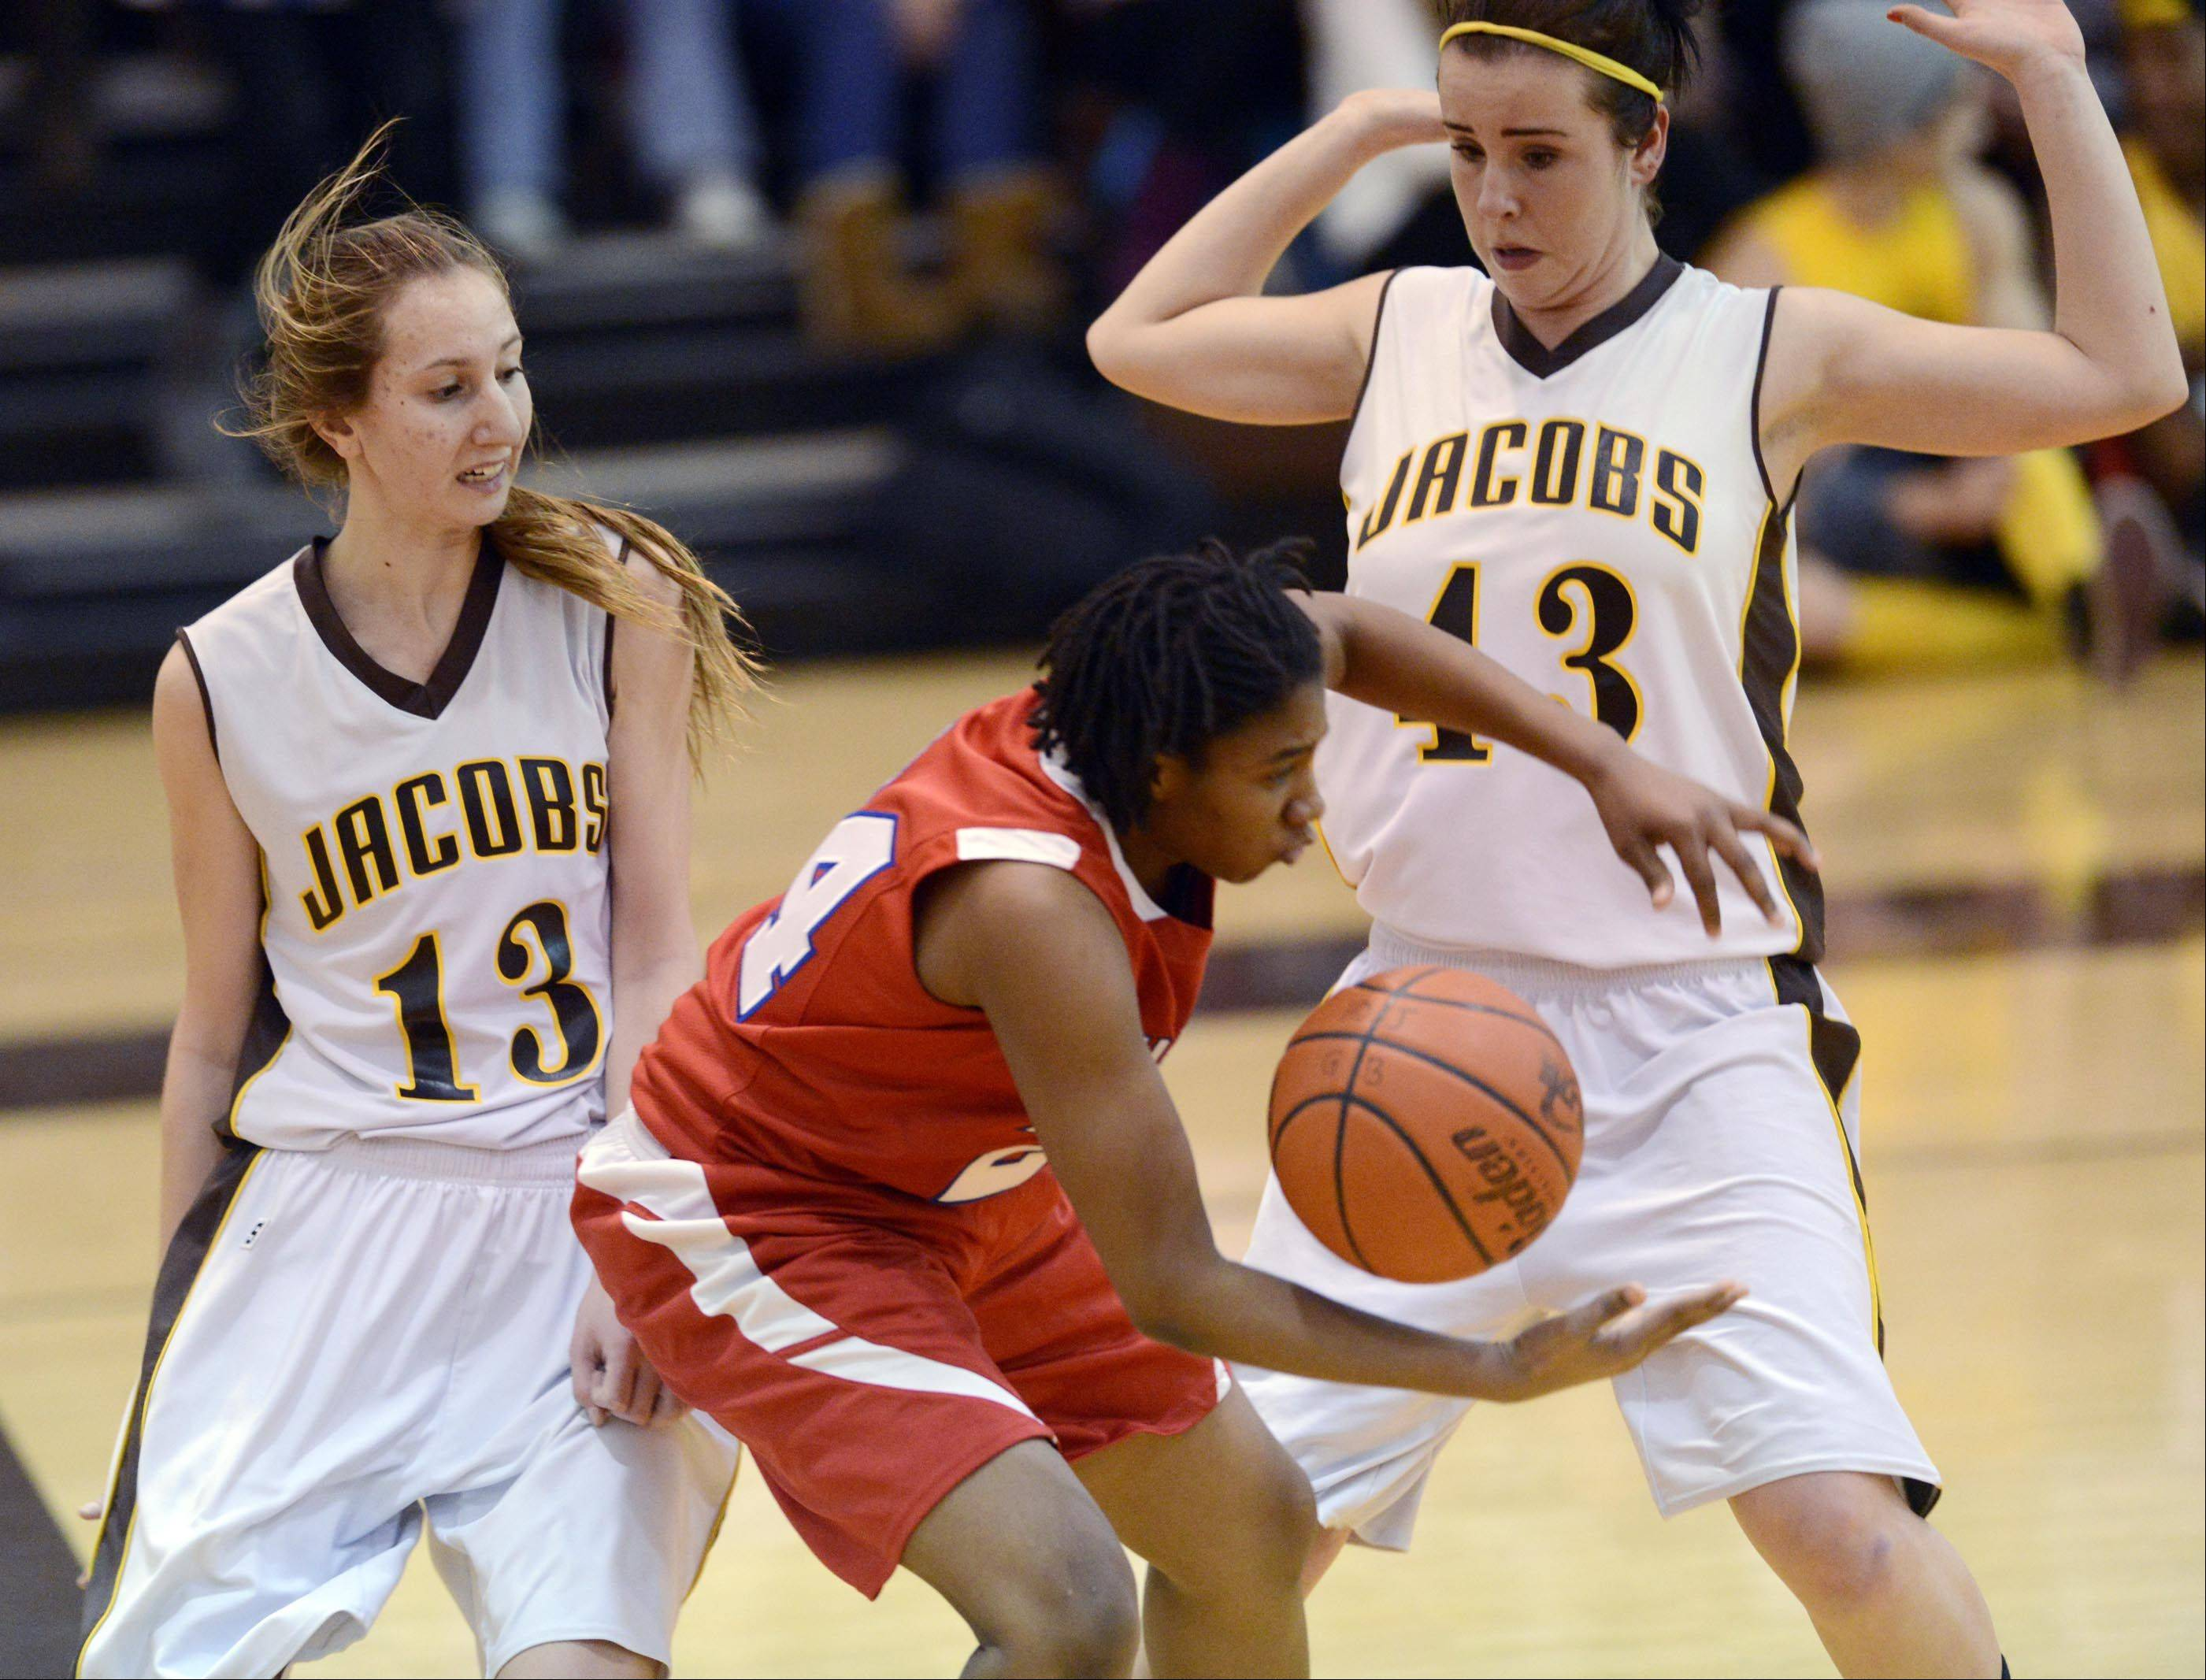 Images: Dundee-Crown vs. Jacobs, girls basketball